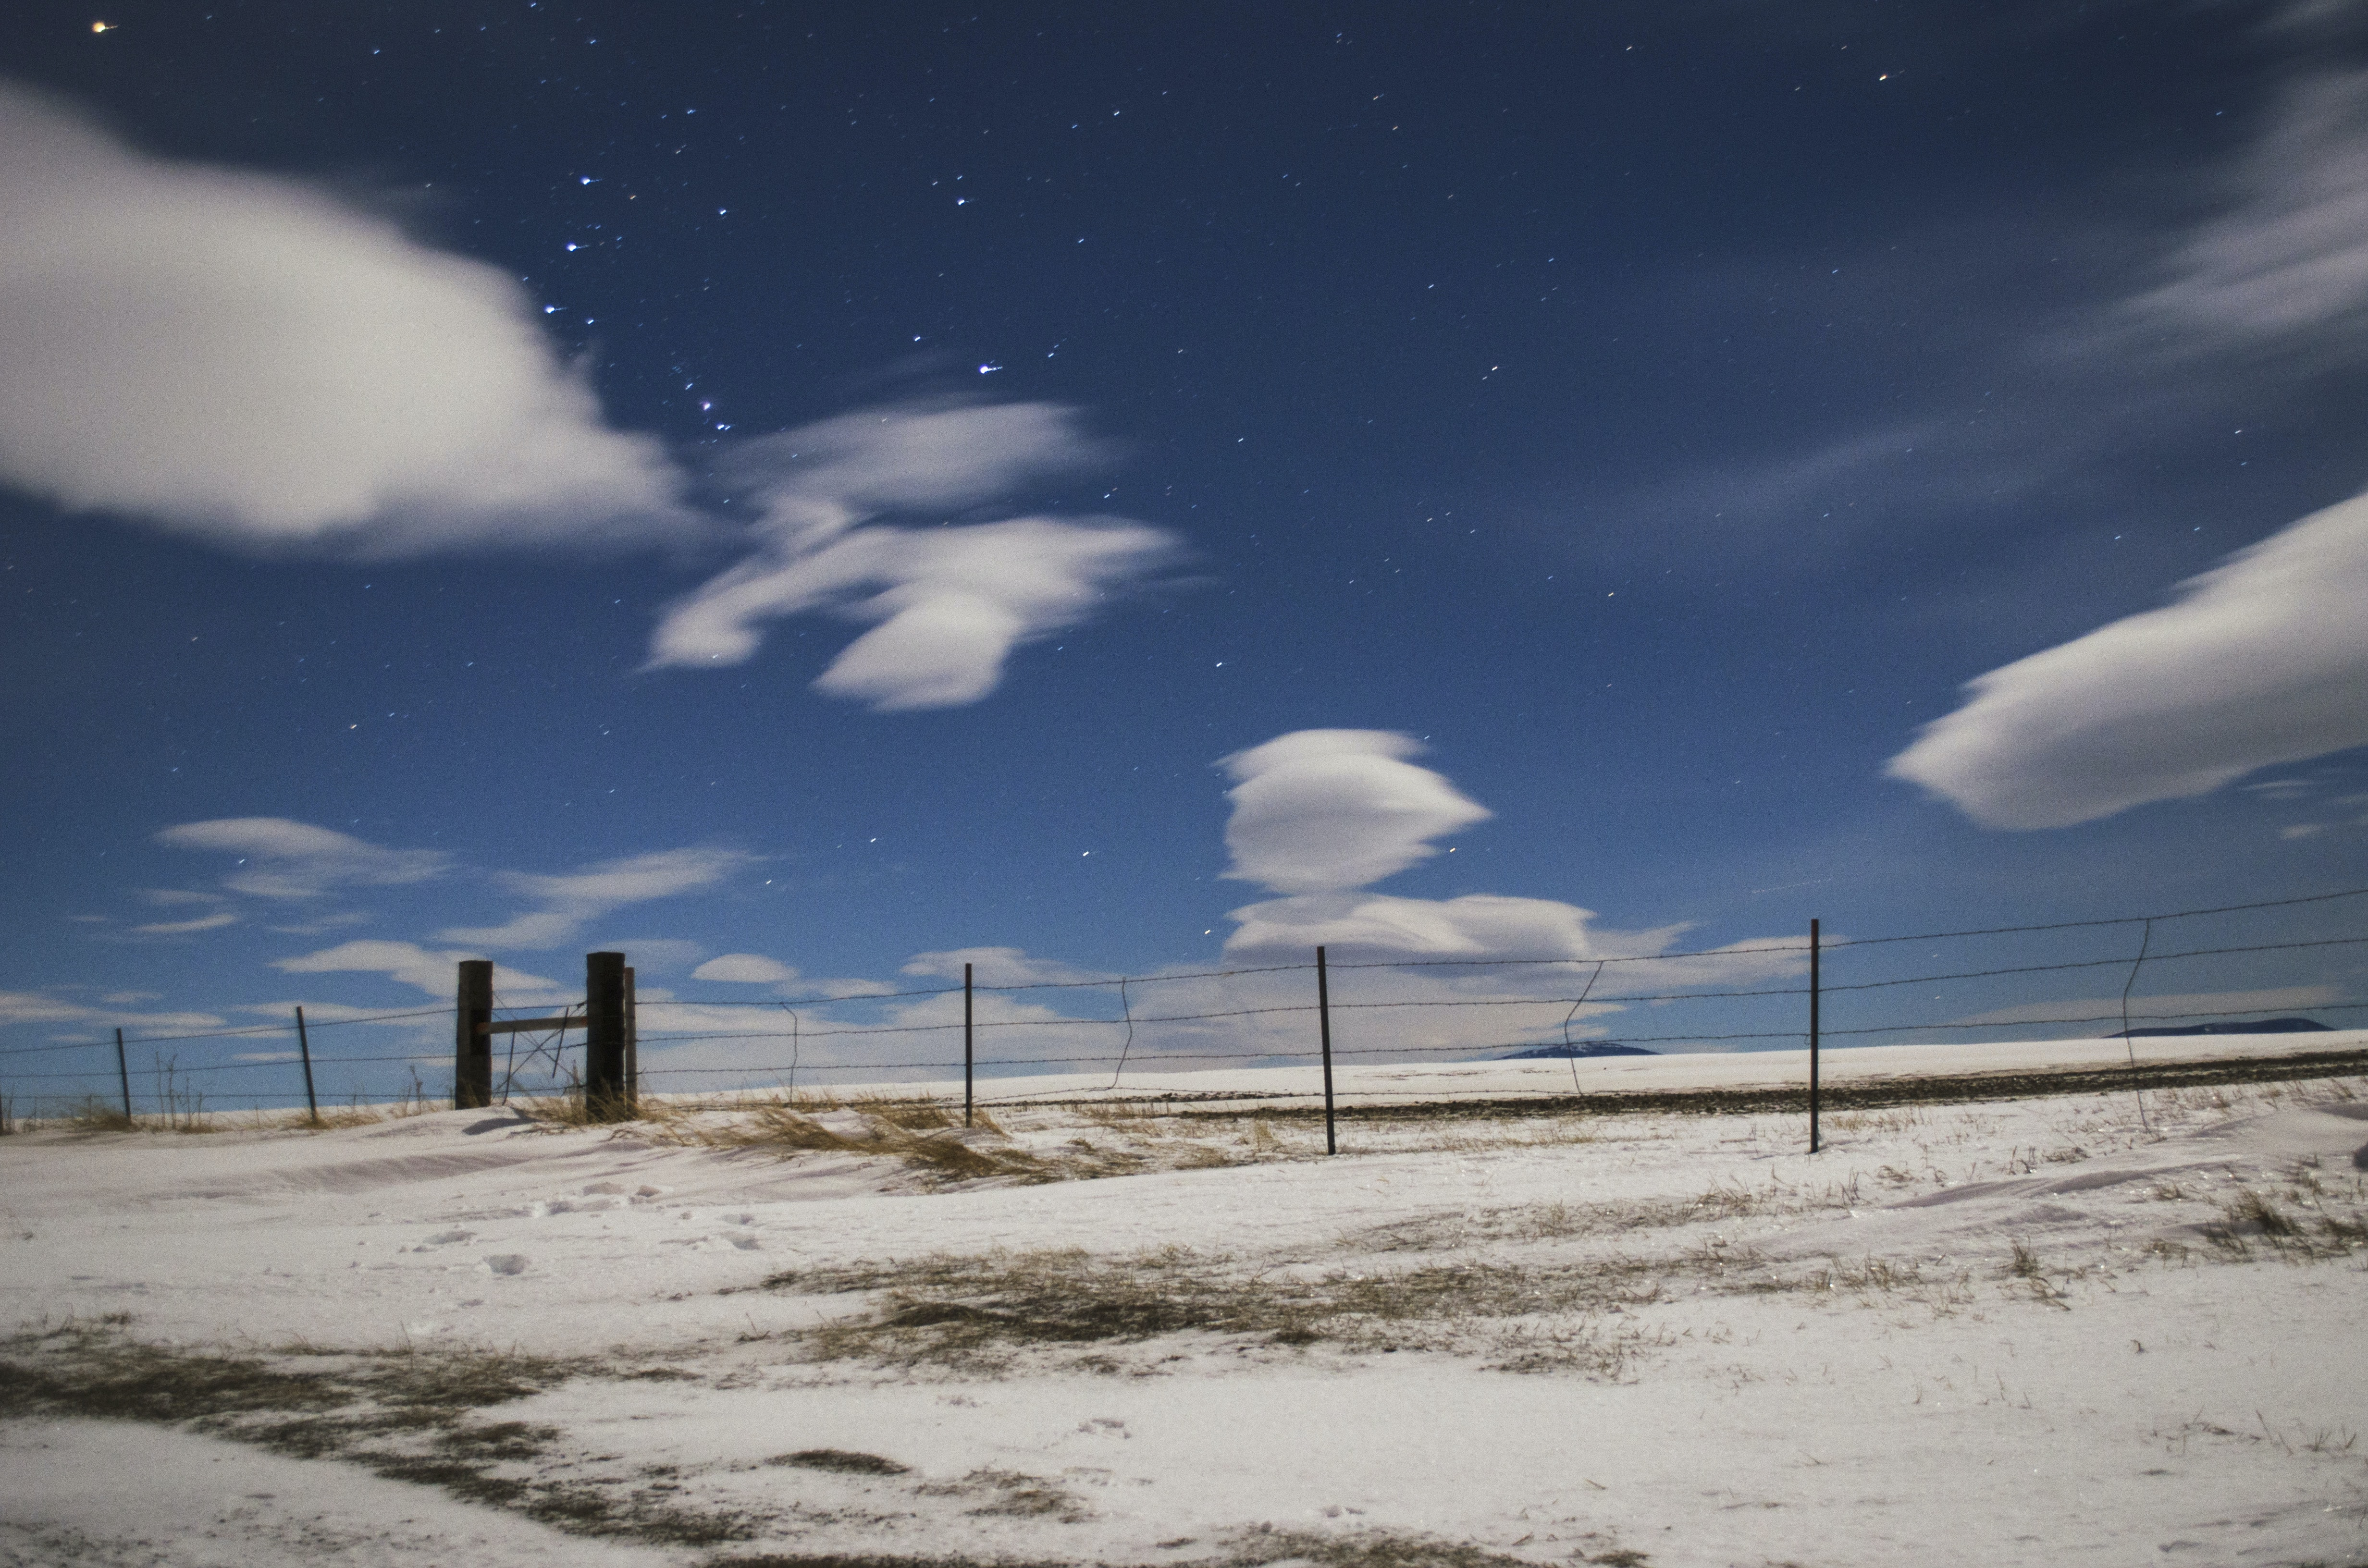 View of the cloudy star speckled sky at a fence near Great Falls